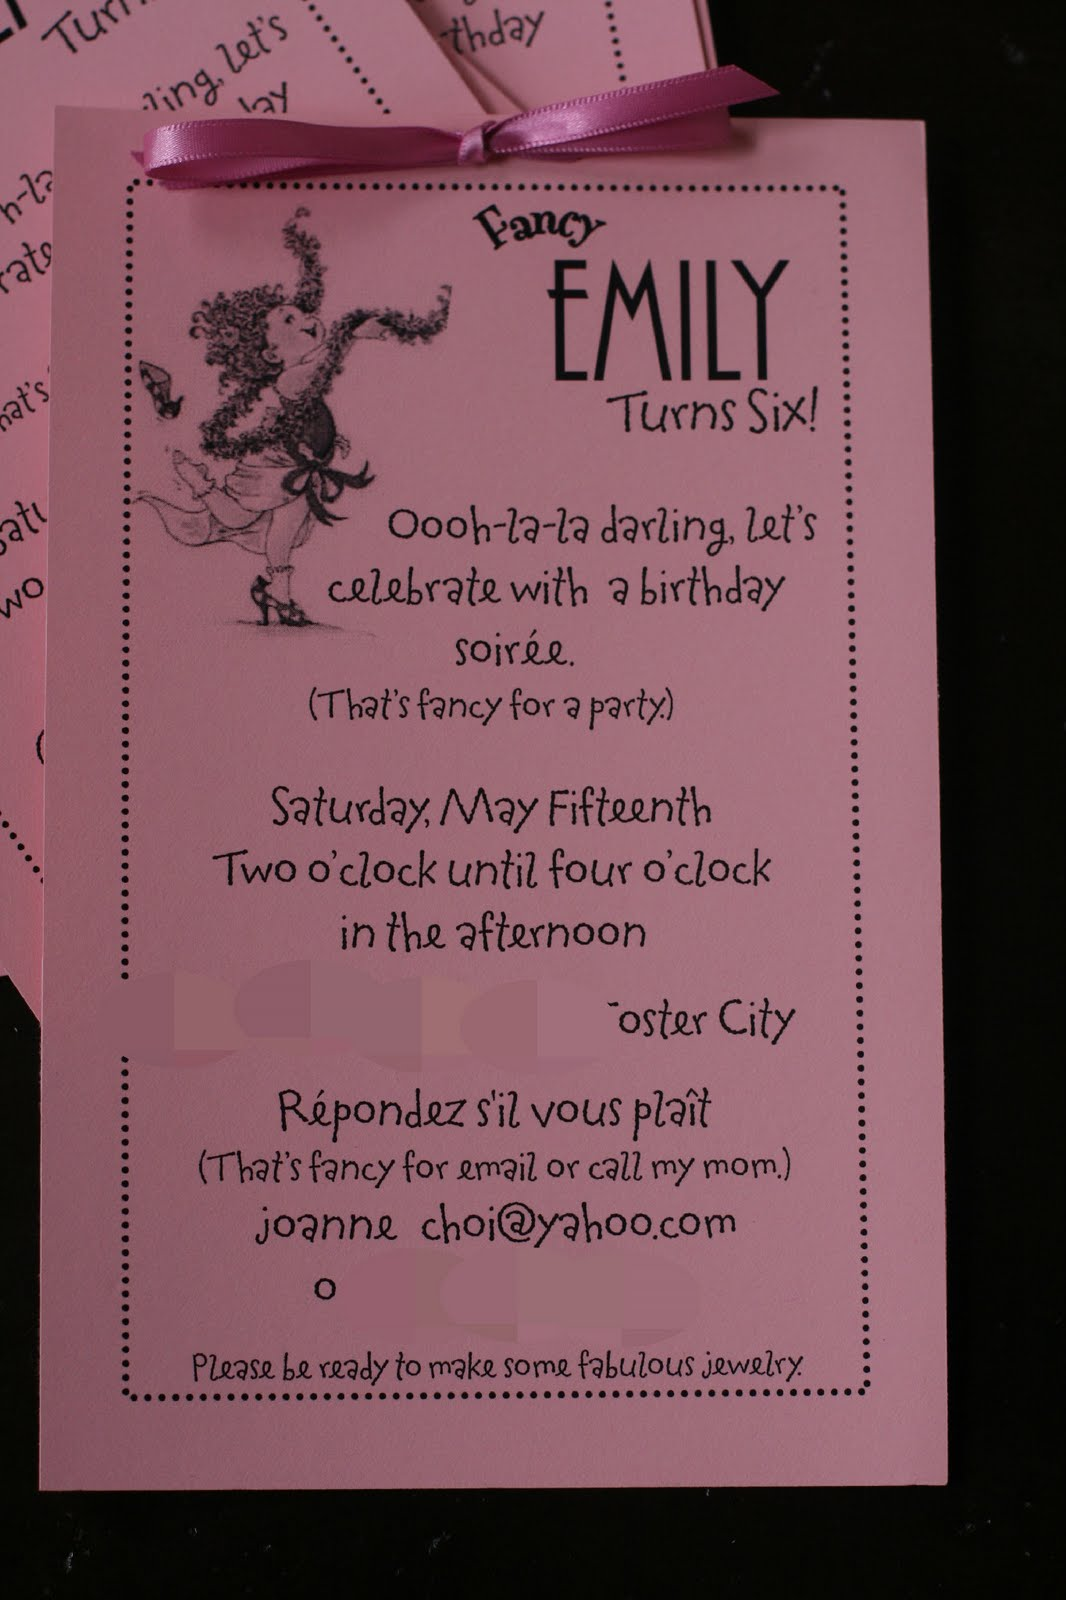 Fancy Nancy 6th Birthday Party: Menu and Party Planning Ideas | Week ...